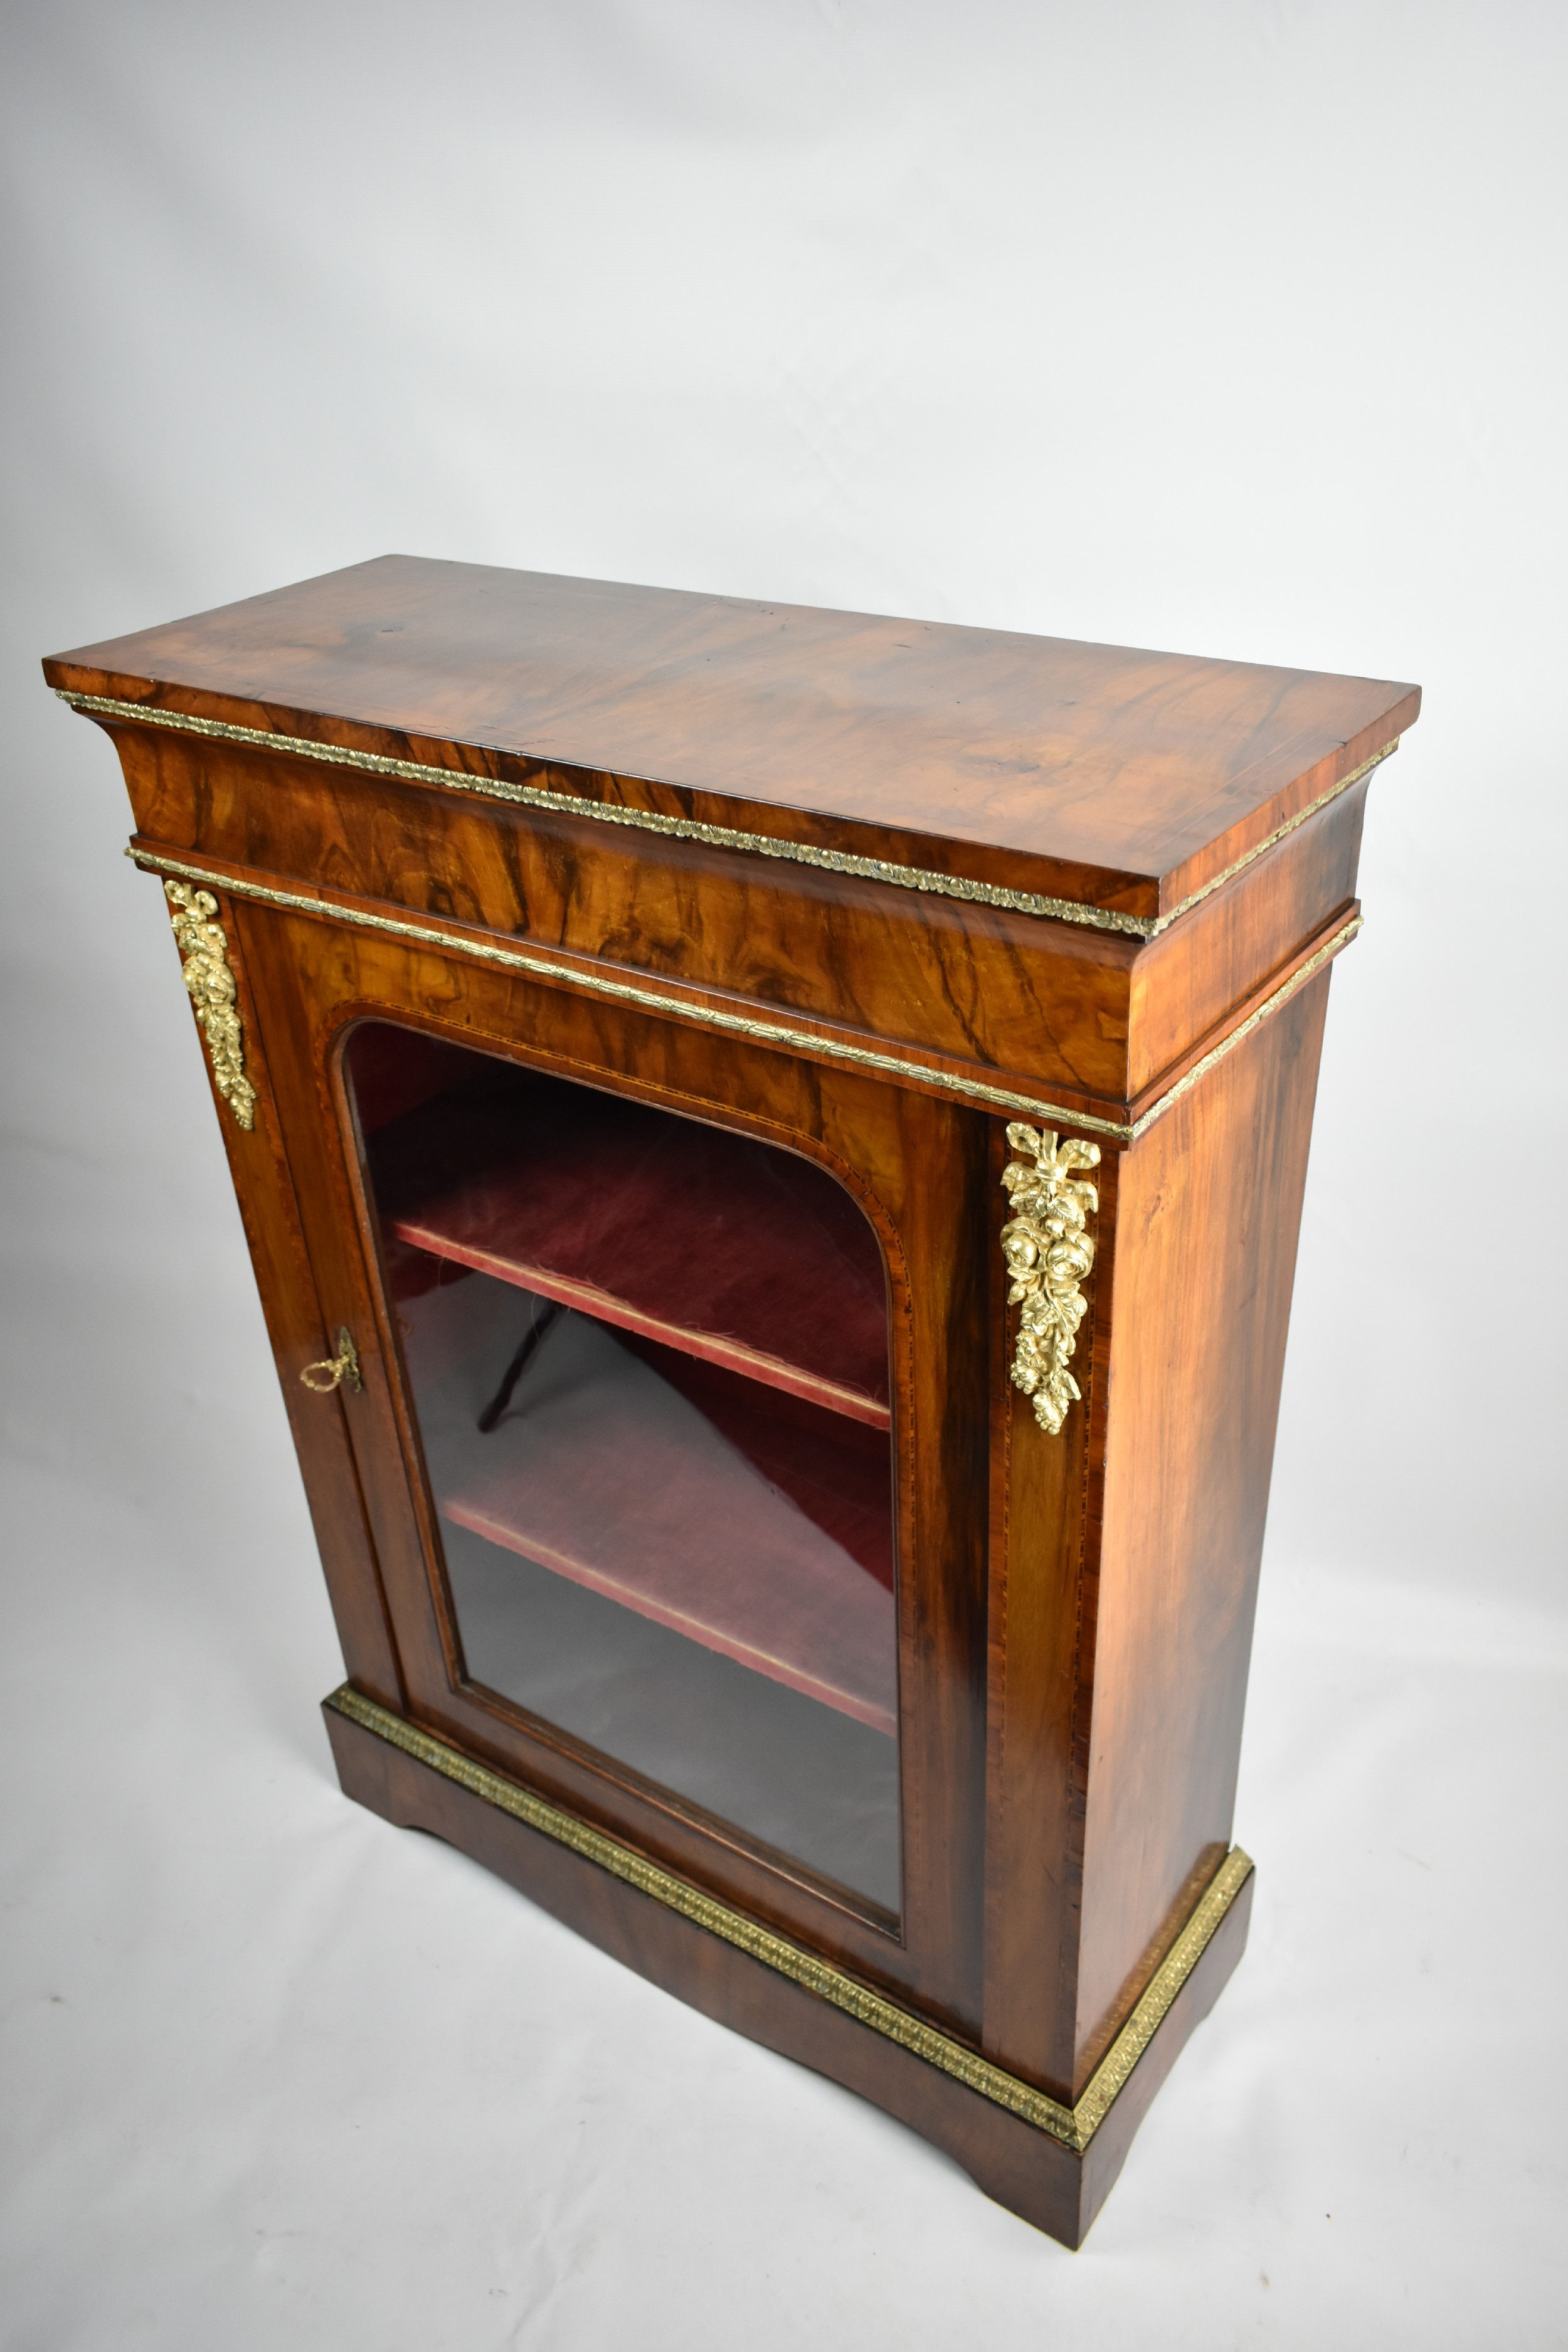 a mid victorian figured walnut and tulipwood banded pier cabinet with ormolu mounts